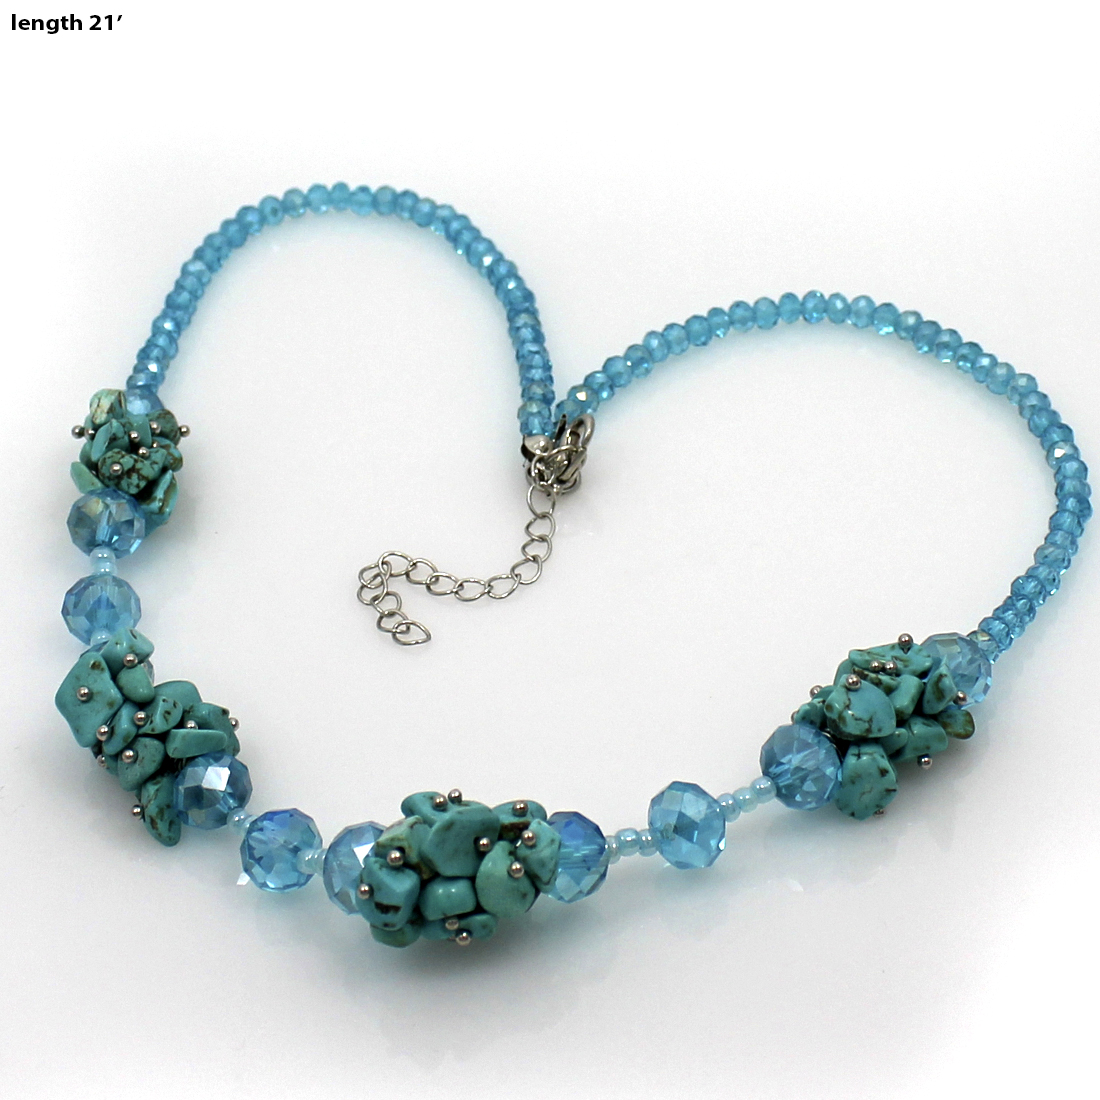 NKL03-TURQ - NKL03-TURQ WHOLESALE GENUINE CRYSTAL AND GLASS NECKLACE SET